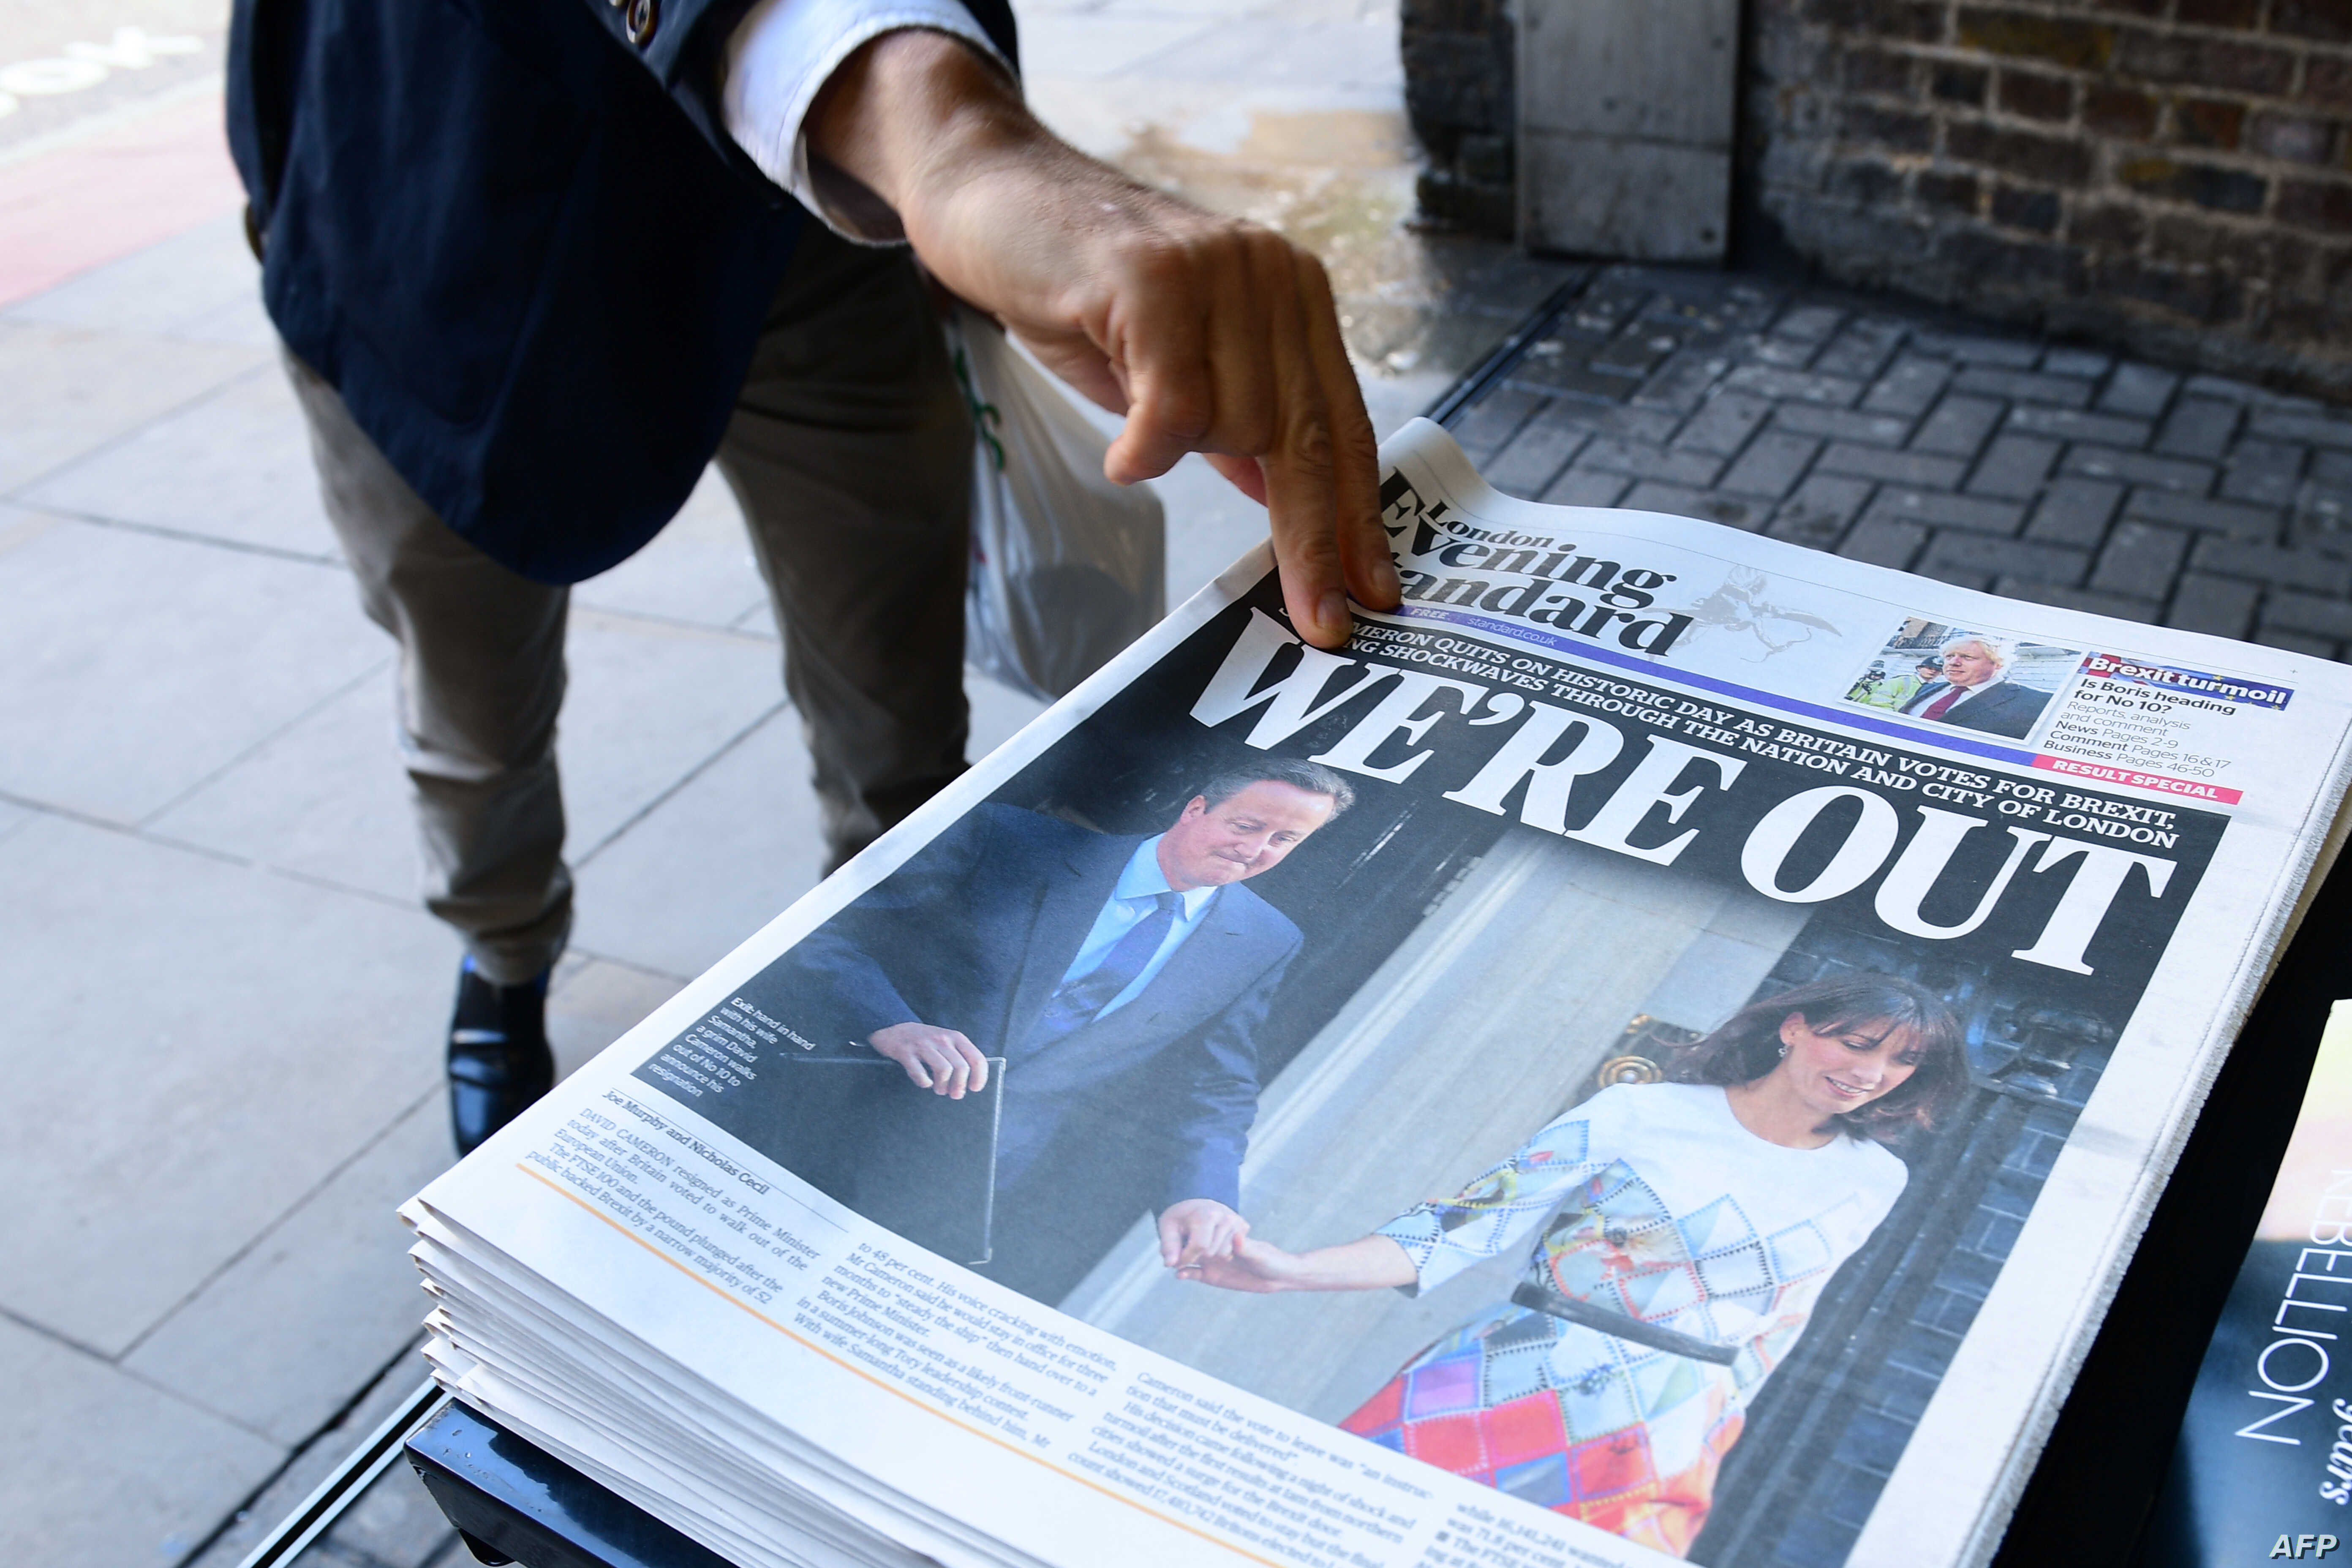 A man takes a copy of the London Evening Standard with the front page reporting the resignation of British Prime Minister David Cameron and the vote to leave the EU in a referendum on June 24, 2016.